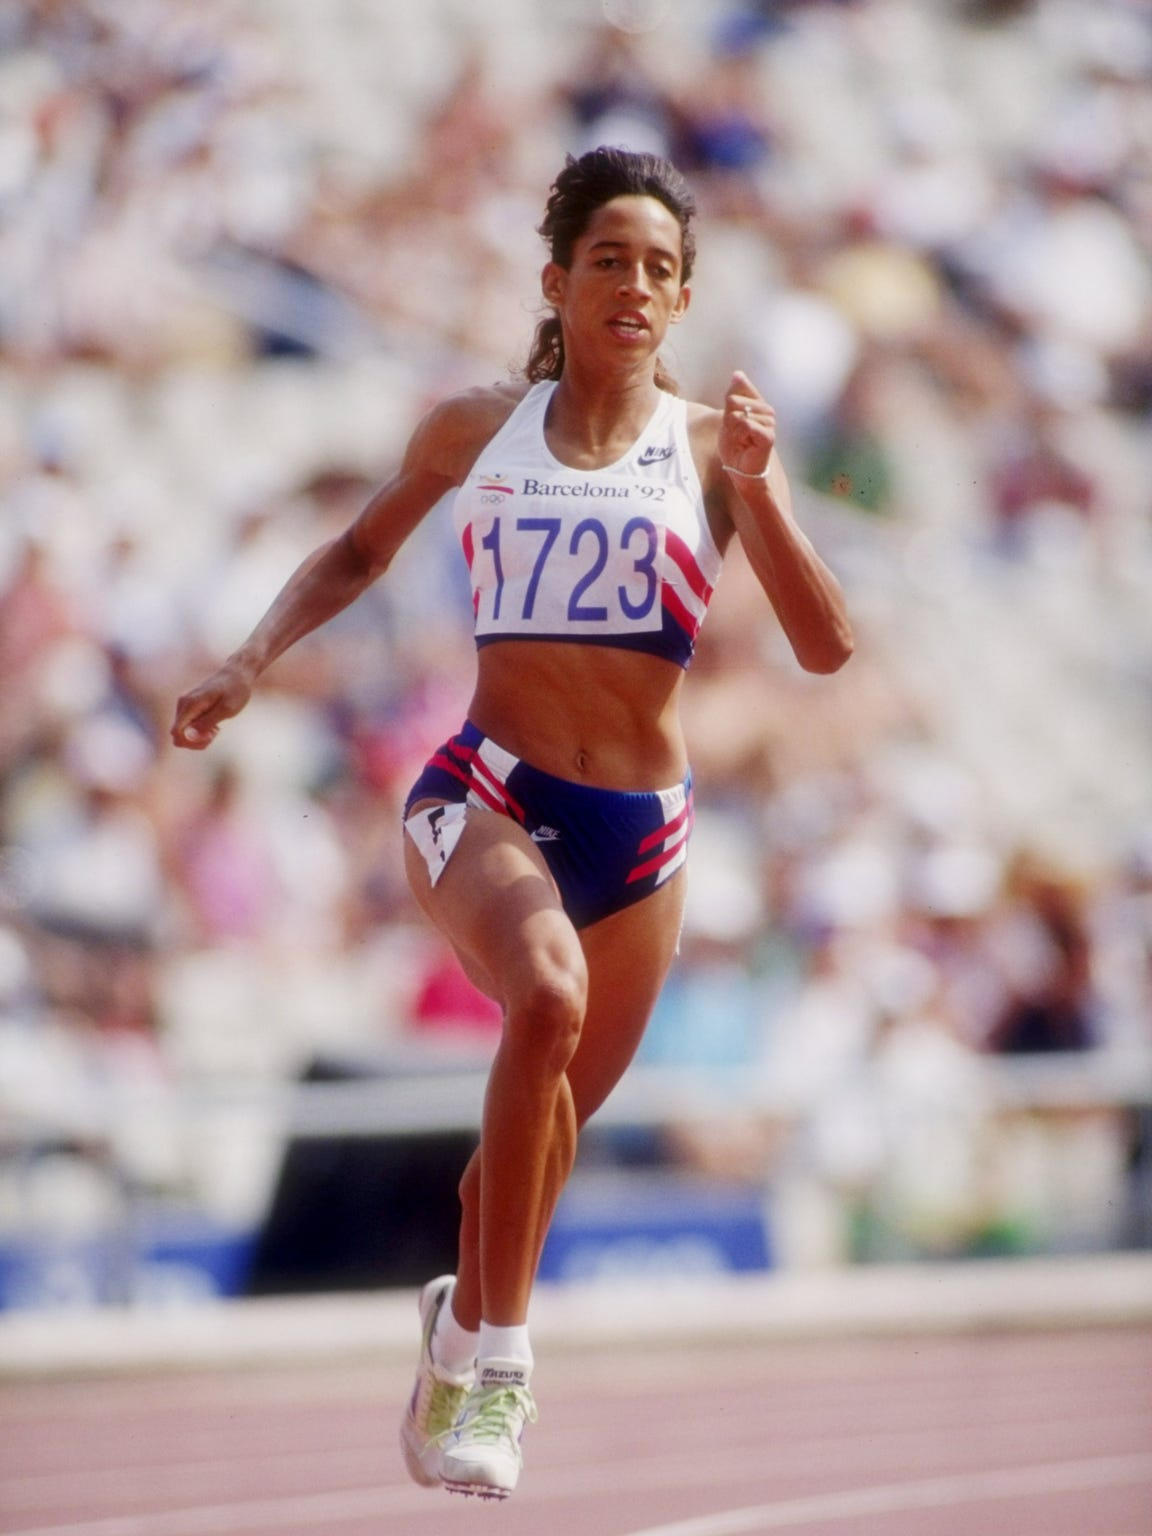 Natasha Brown was an Olympic silver medalist in the